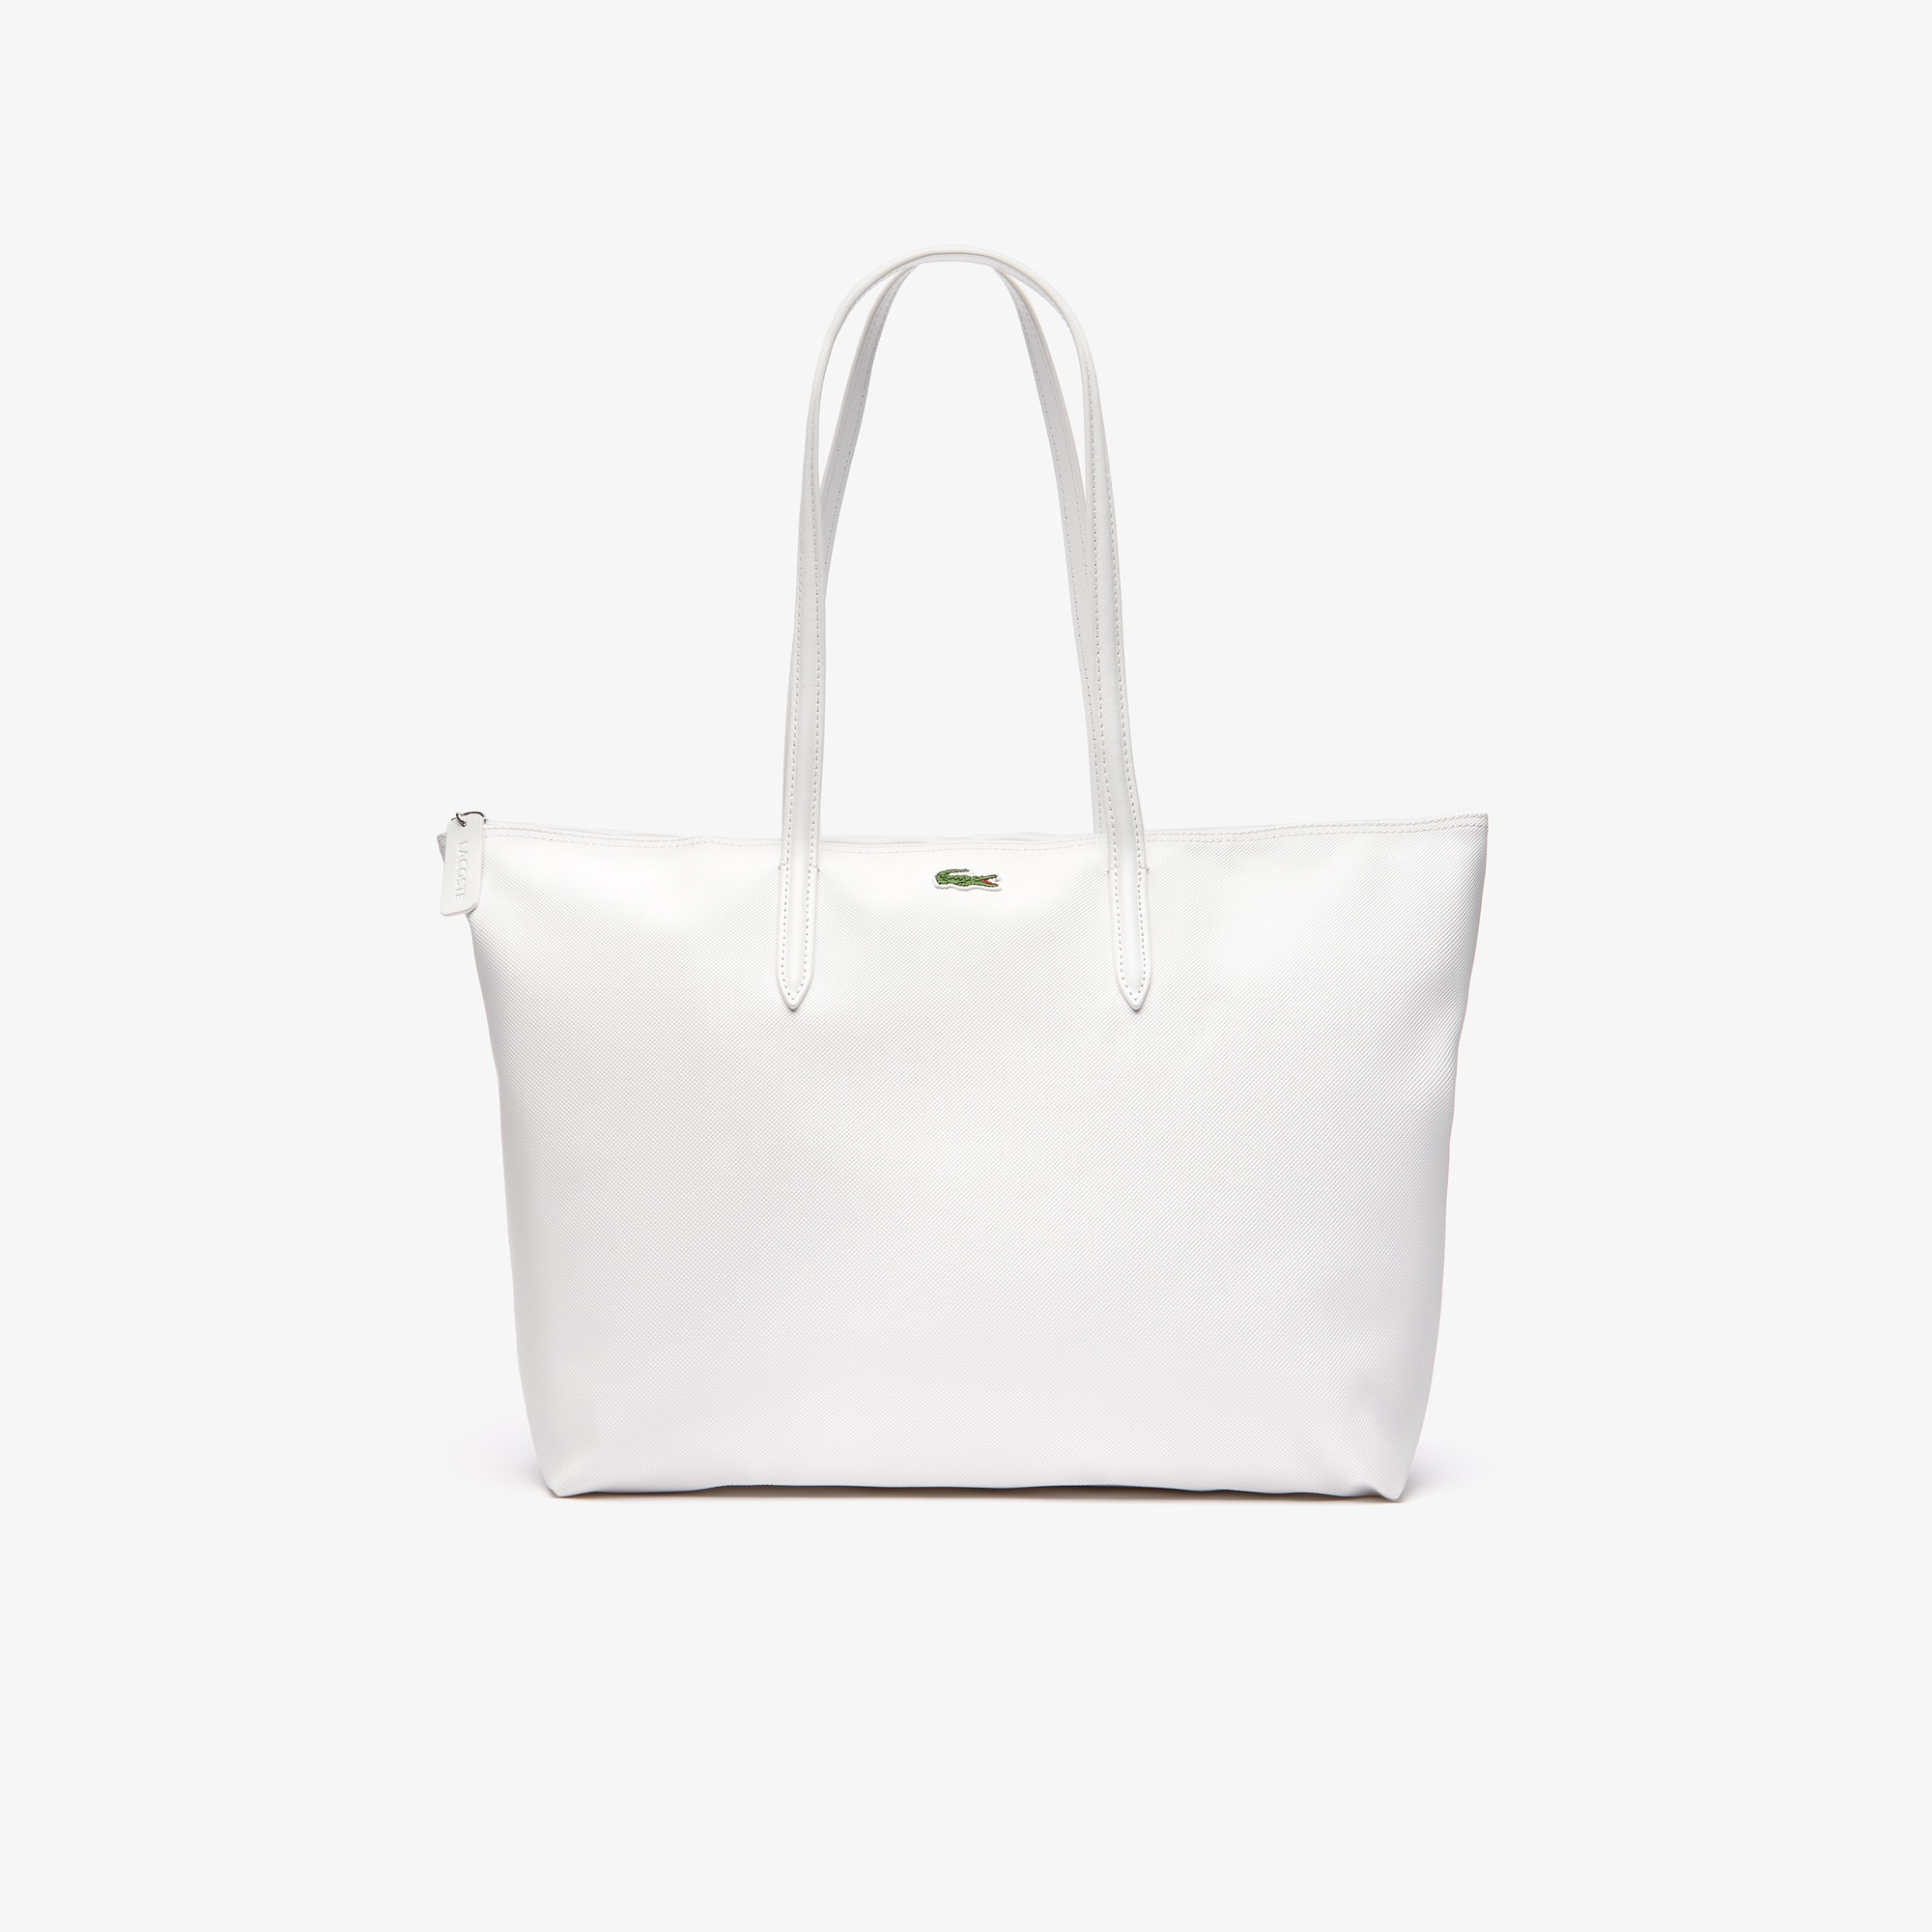 Lacoste Women's L.12.12 Tote Bag